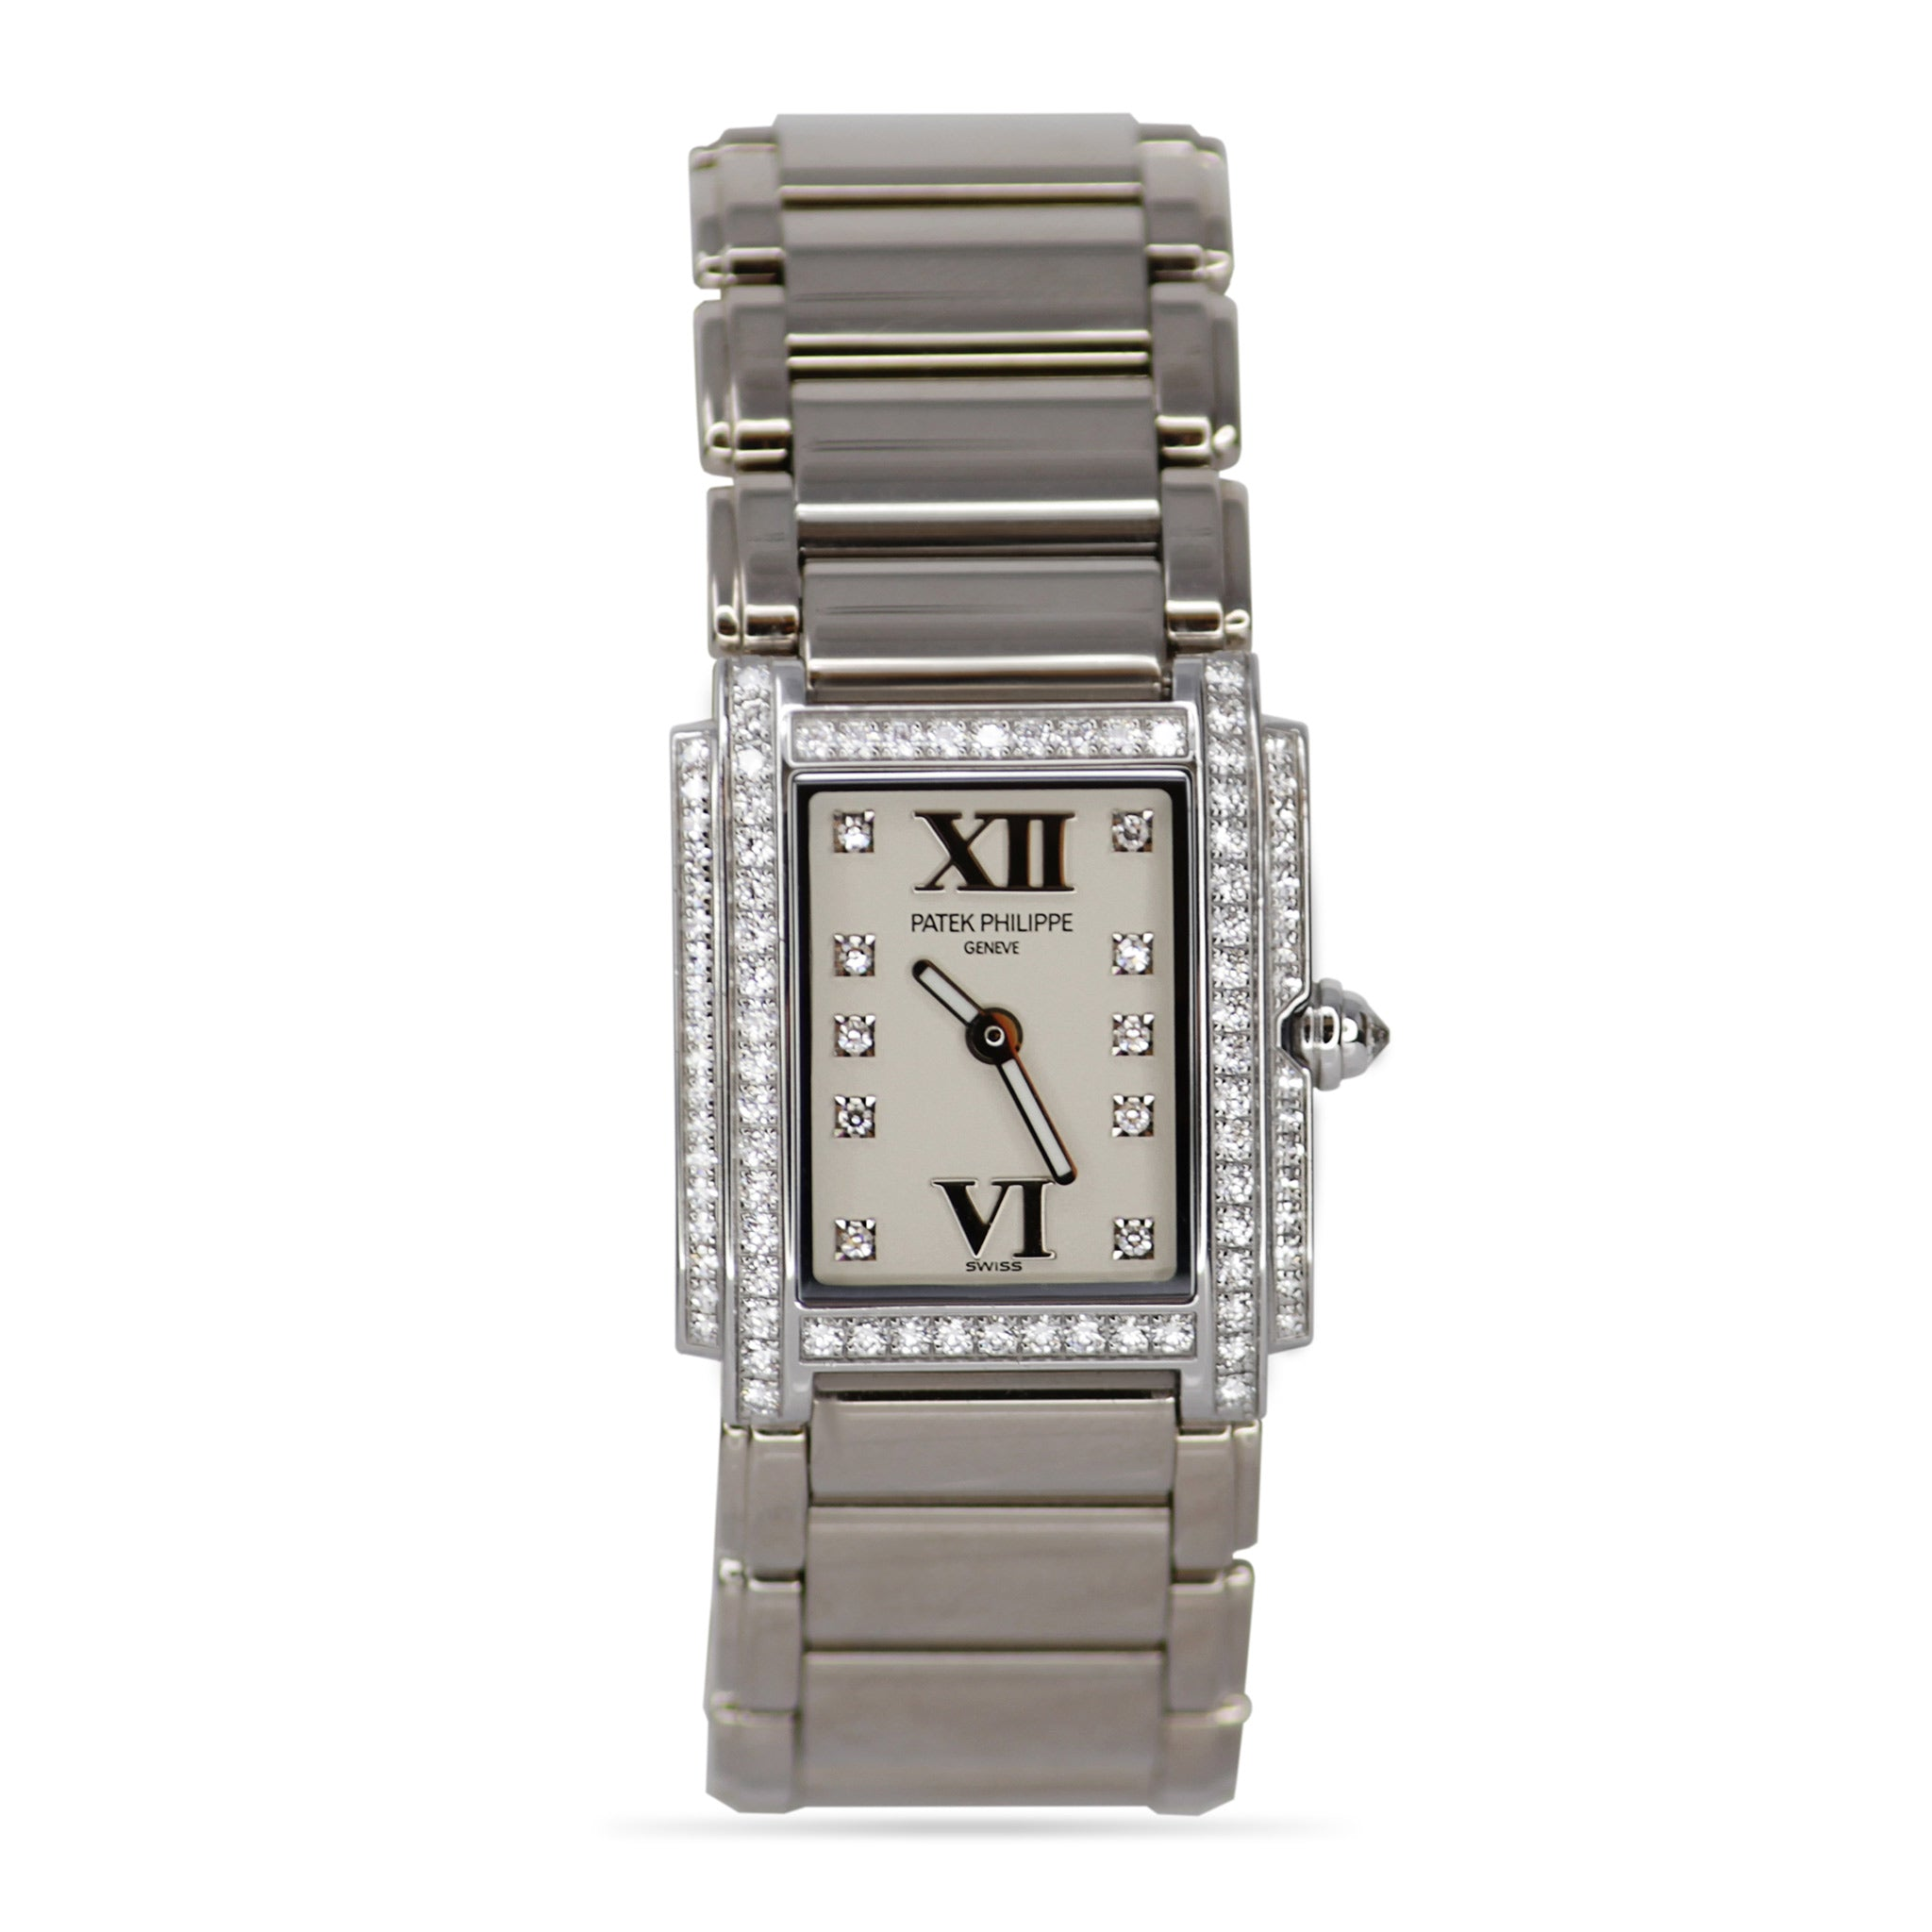 Patek Philippe Ladies White Gold Timeless Watch With Diamonds